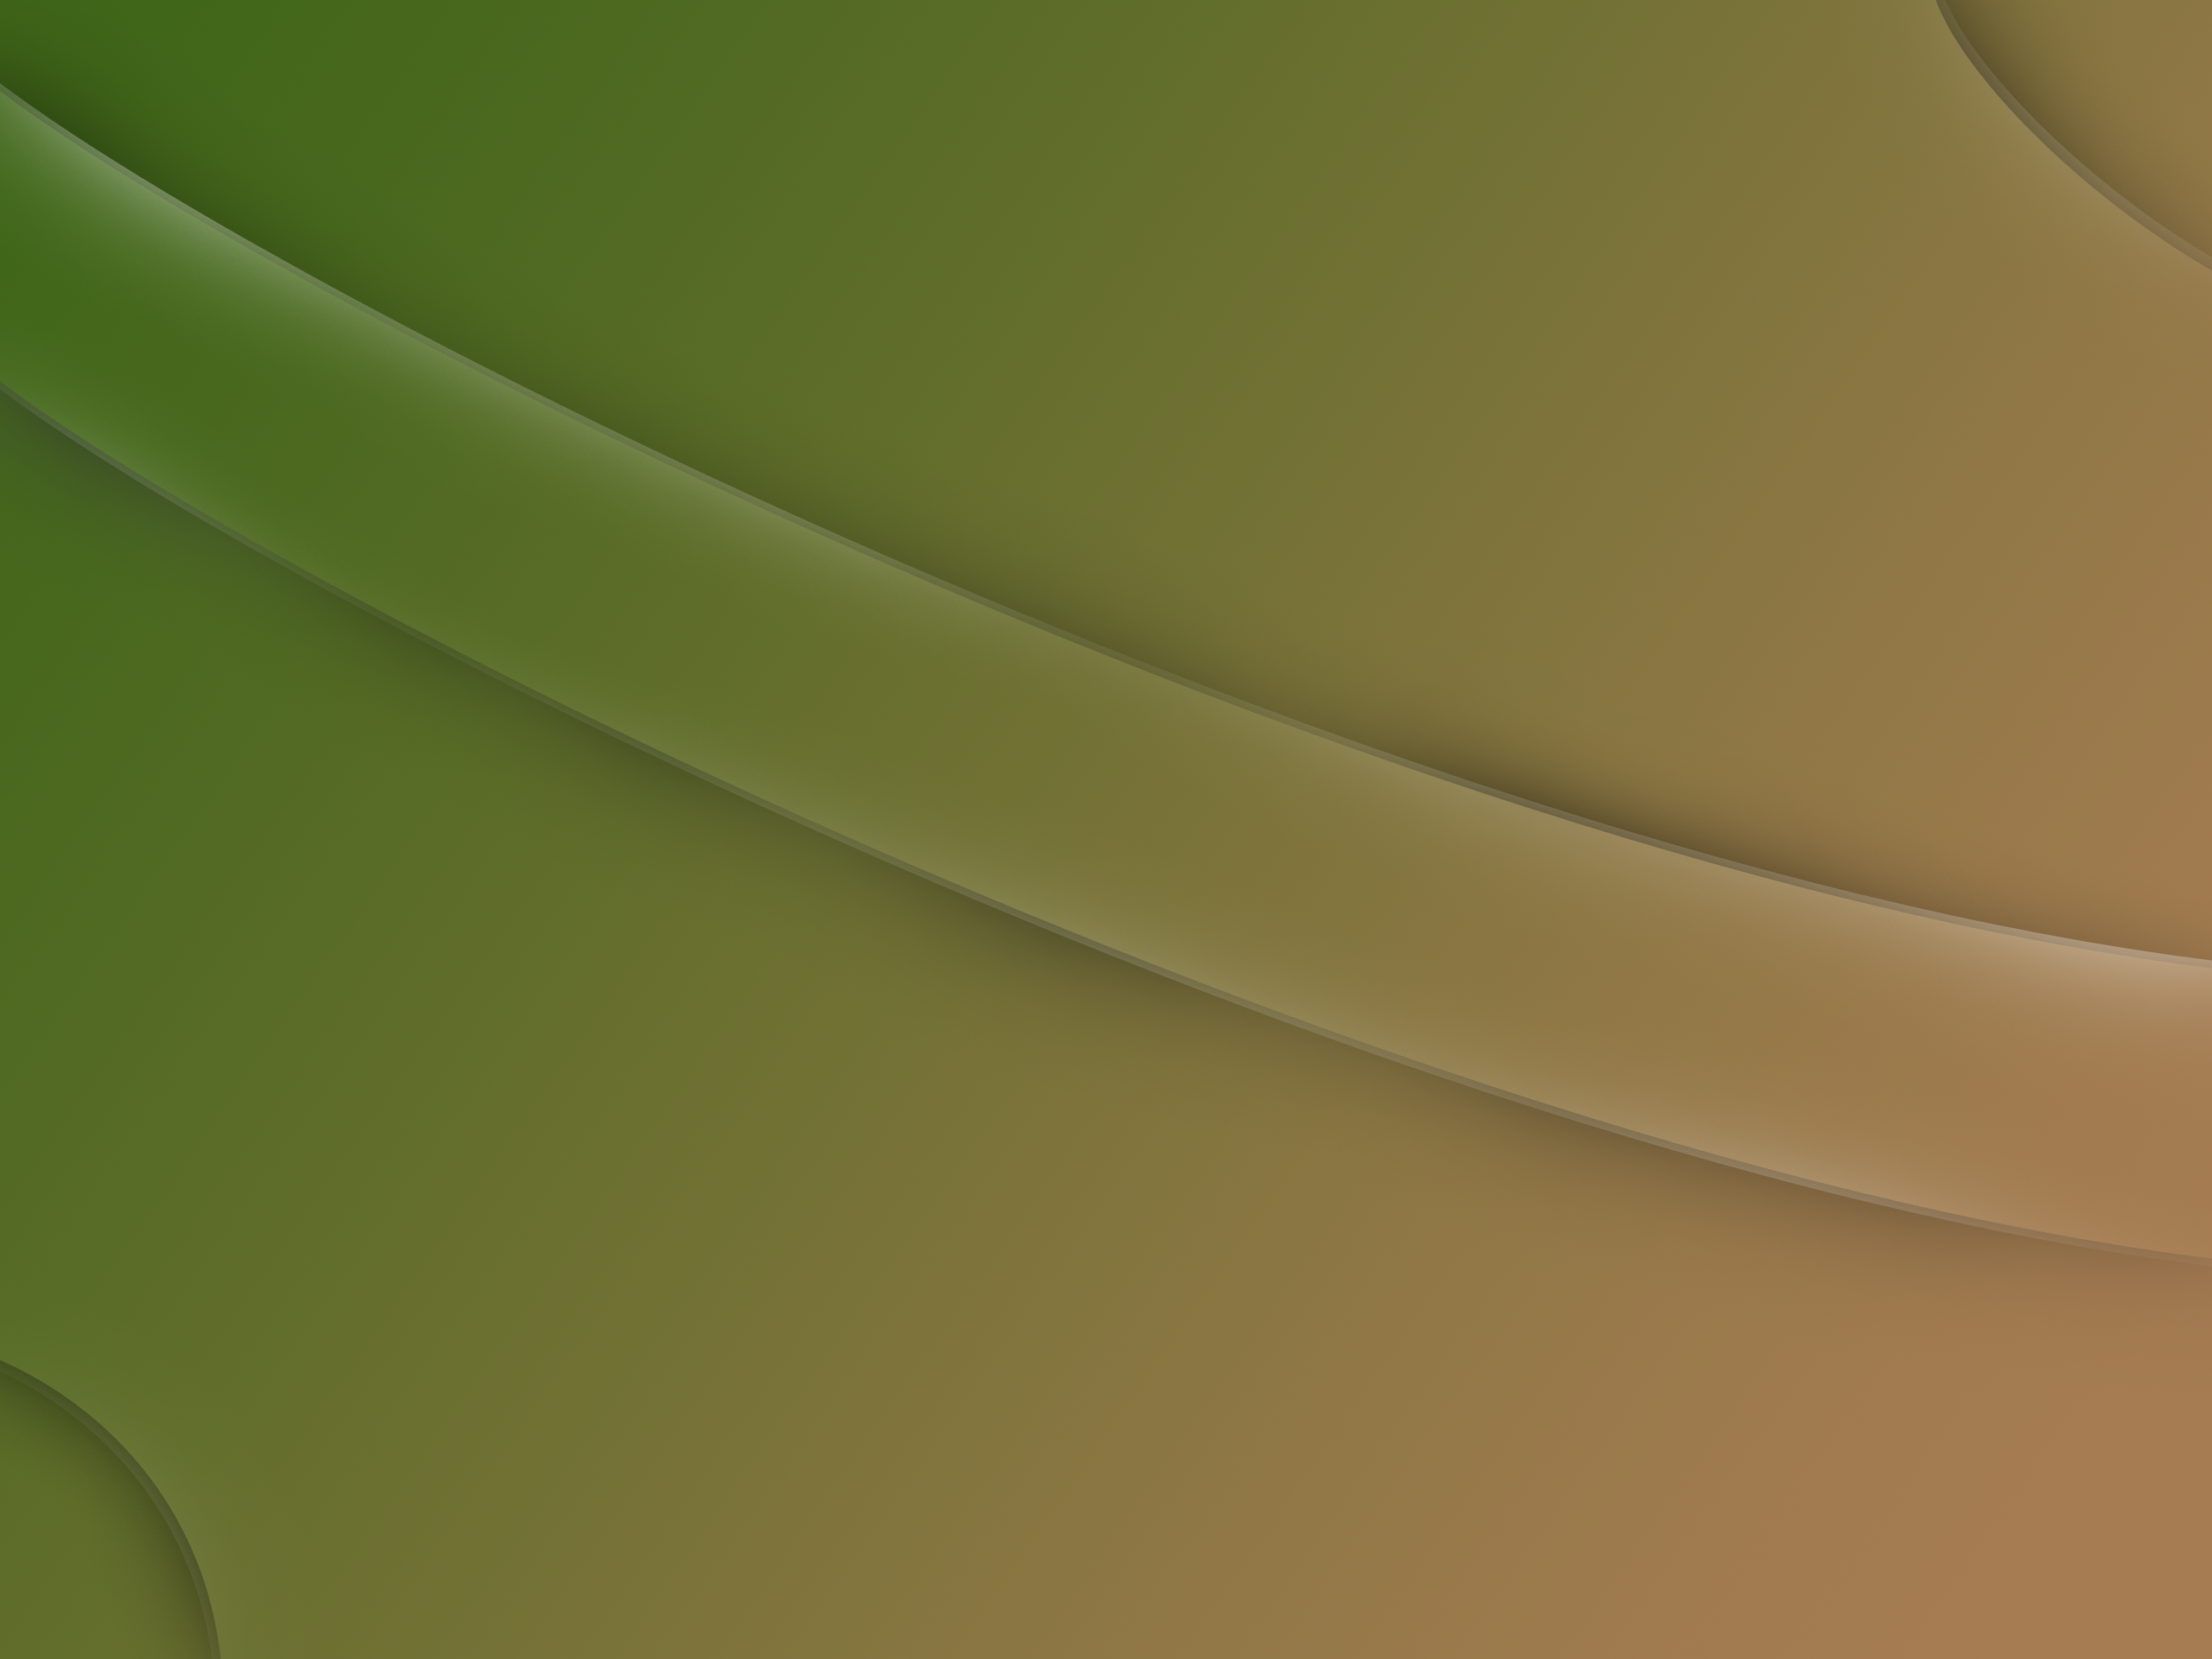 https://orig00.deviantart.net/7711/f/2009/360/0/c/wallpaper_green_and_brown_by_too_fast.png